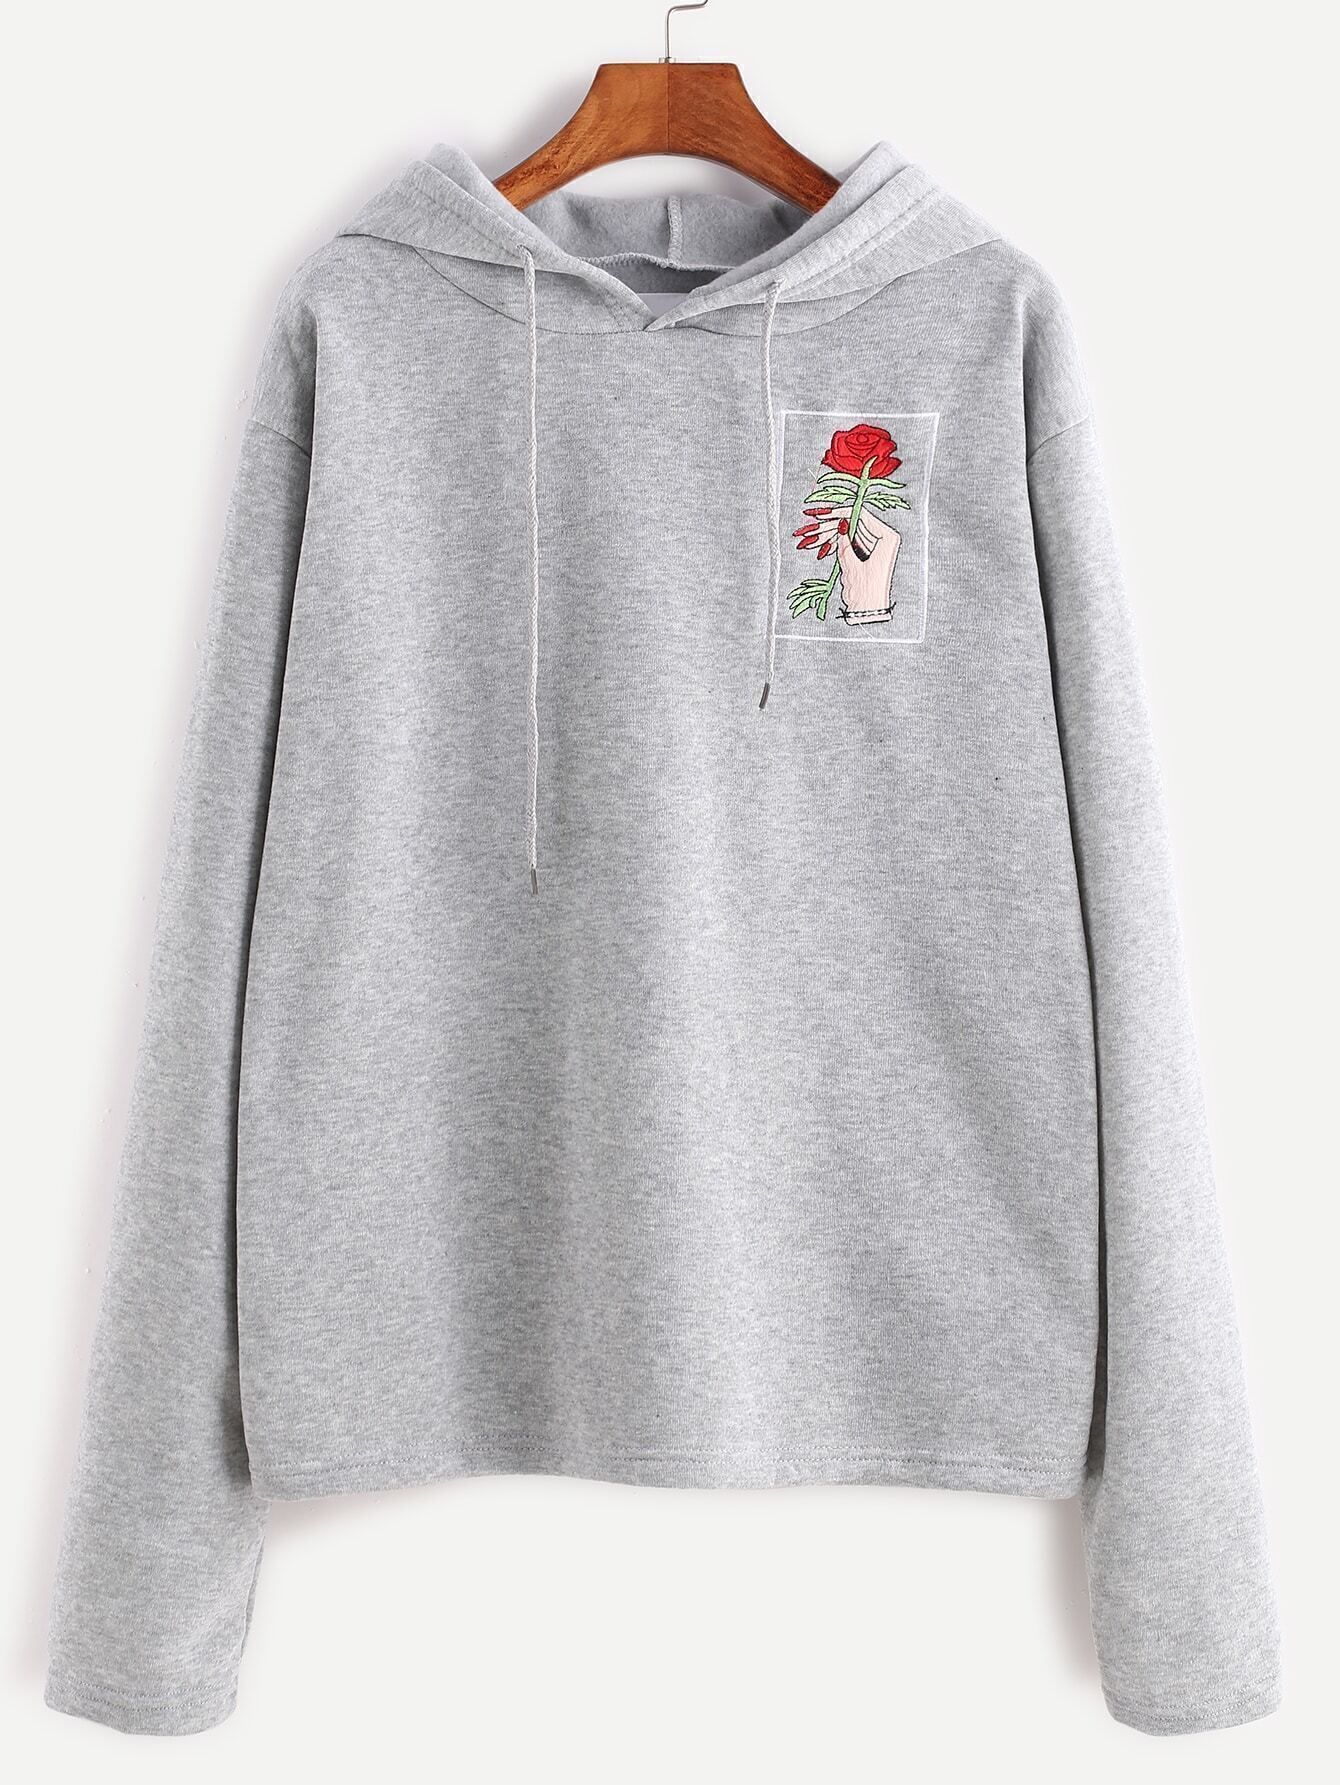 Heather Grey Hooded Embroidered Sweatshirt